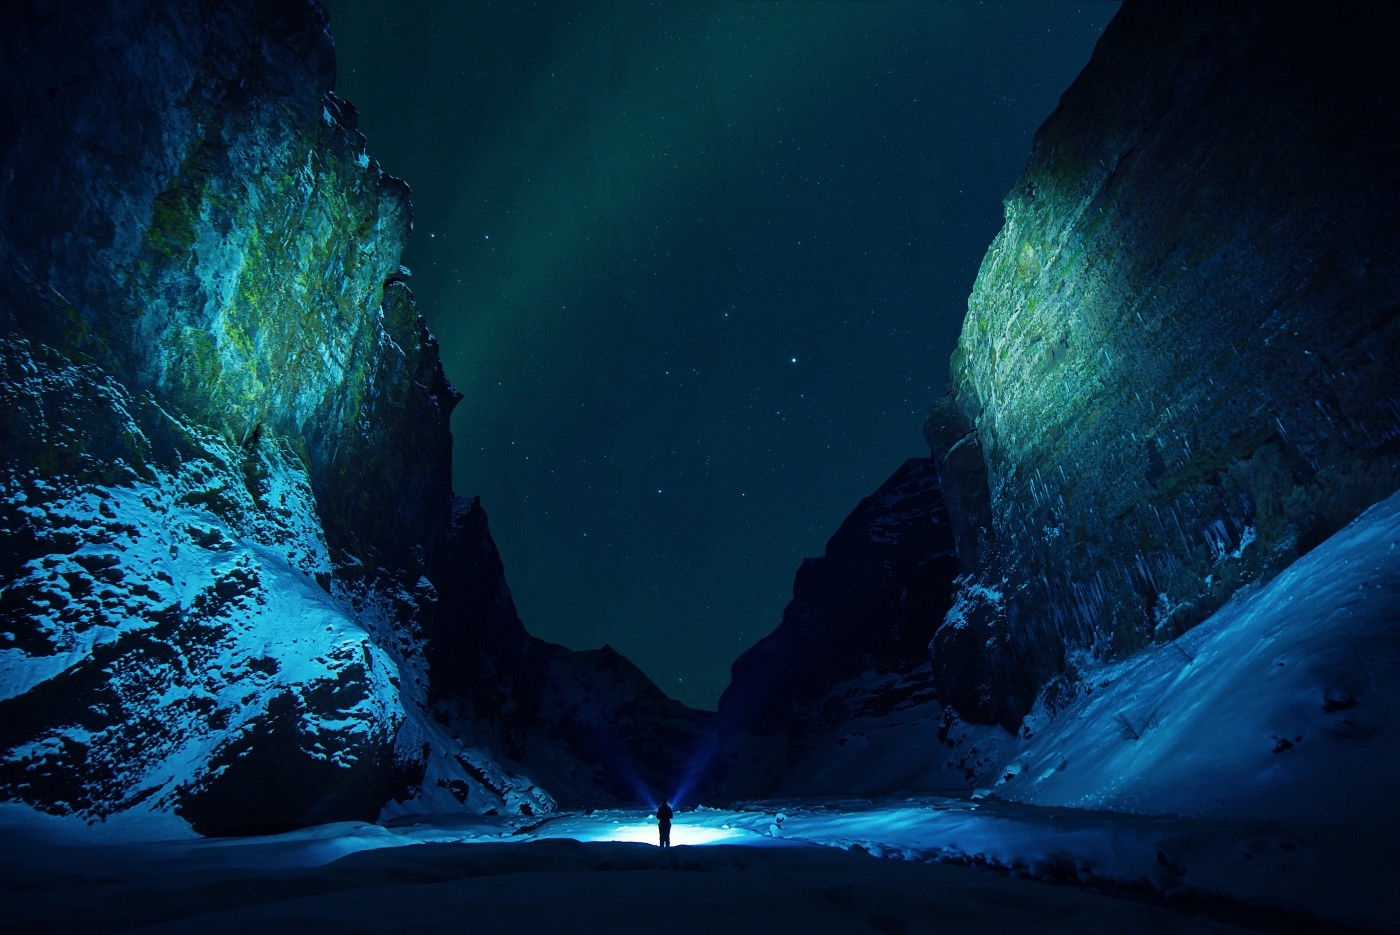 Northern lights in Stakkholtsgja canyon, Iceland.